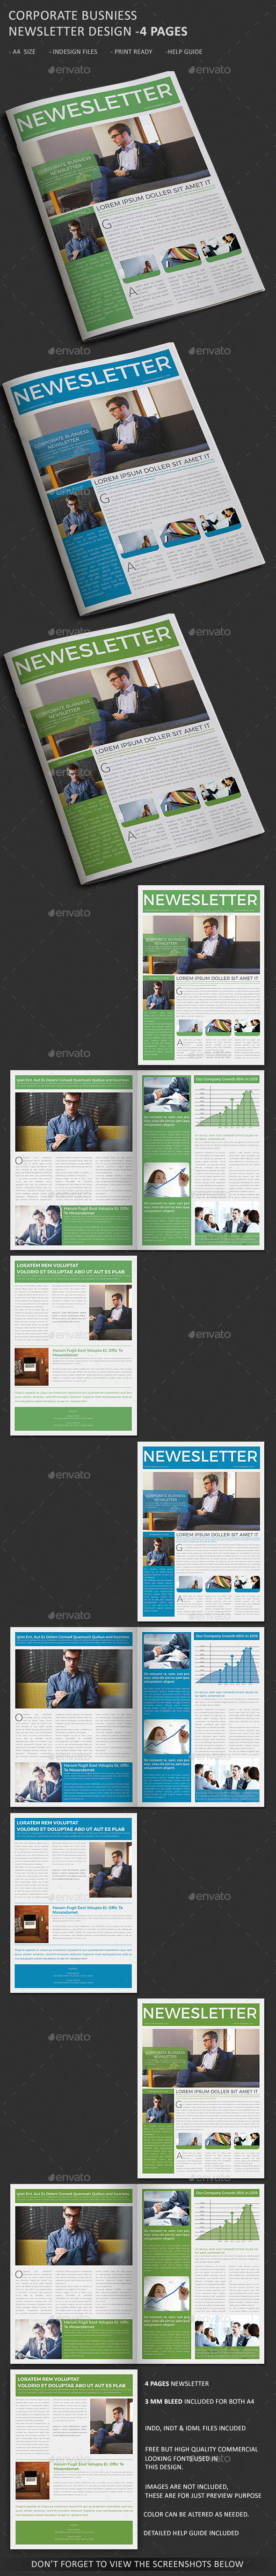 Corporate Business Newsletter - 4 Page  - Newsletters Print Templates